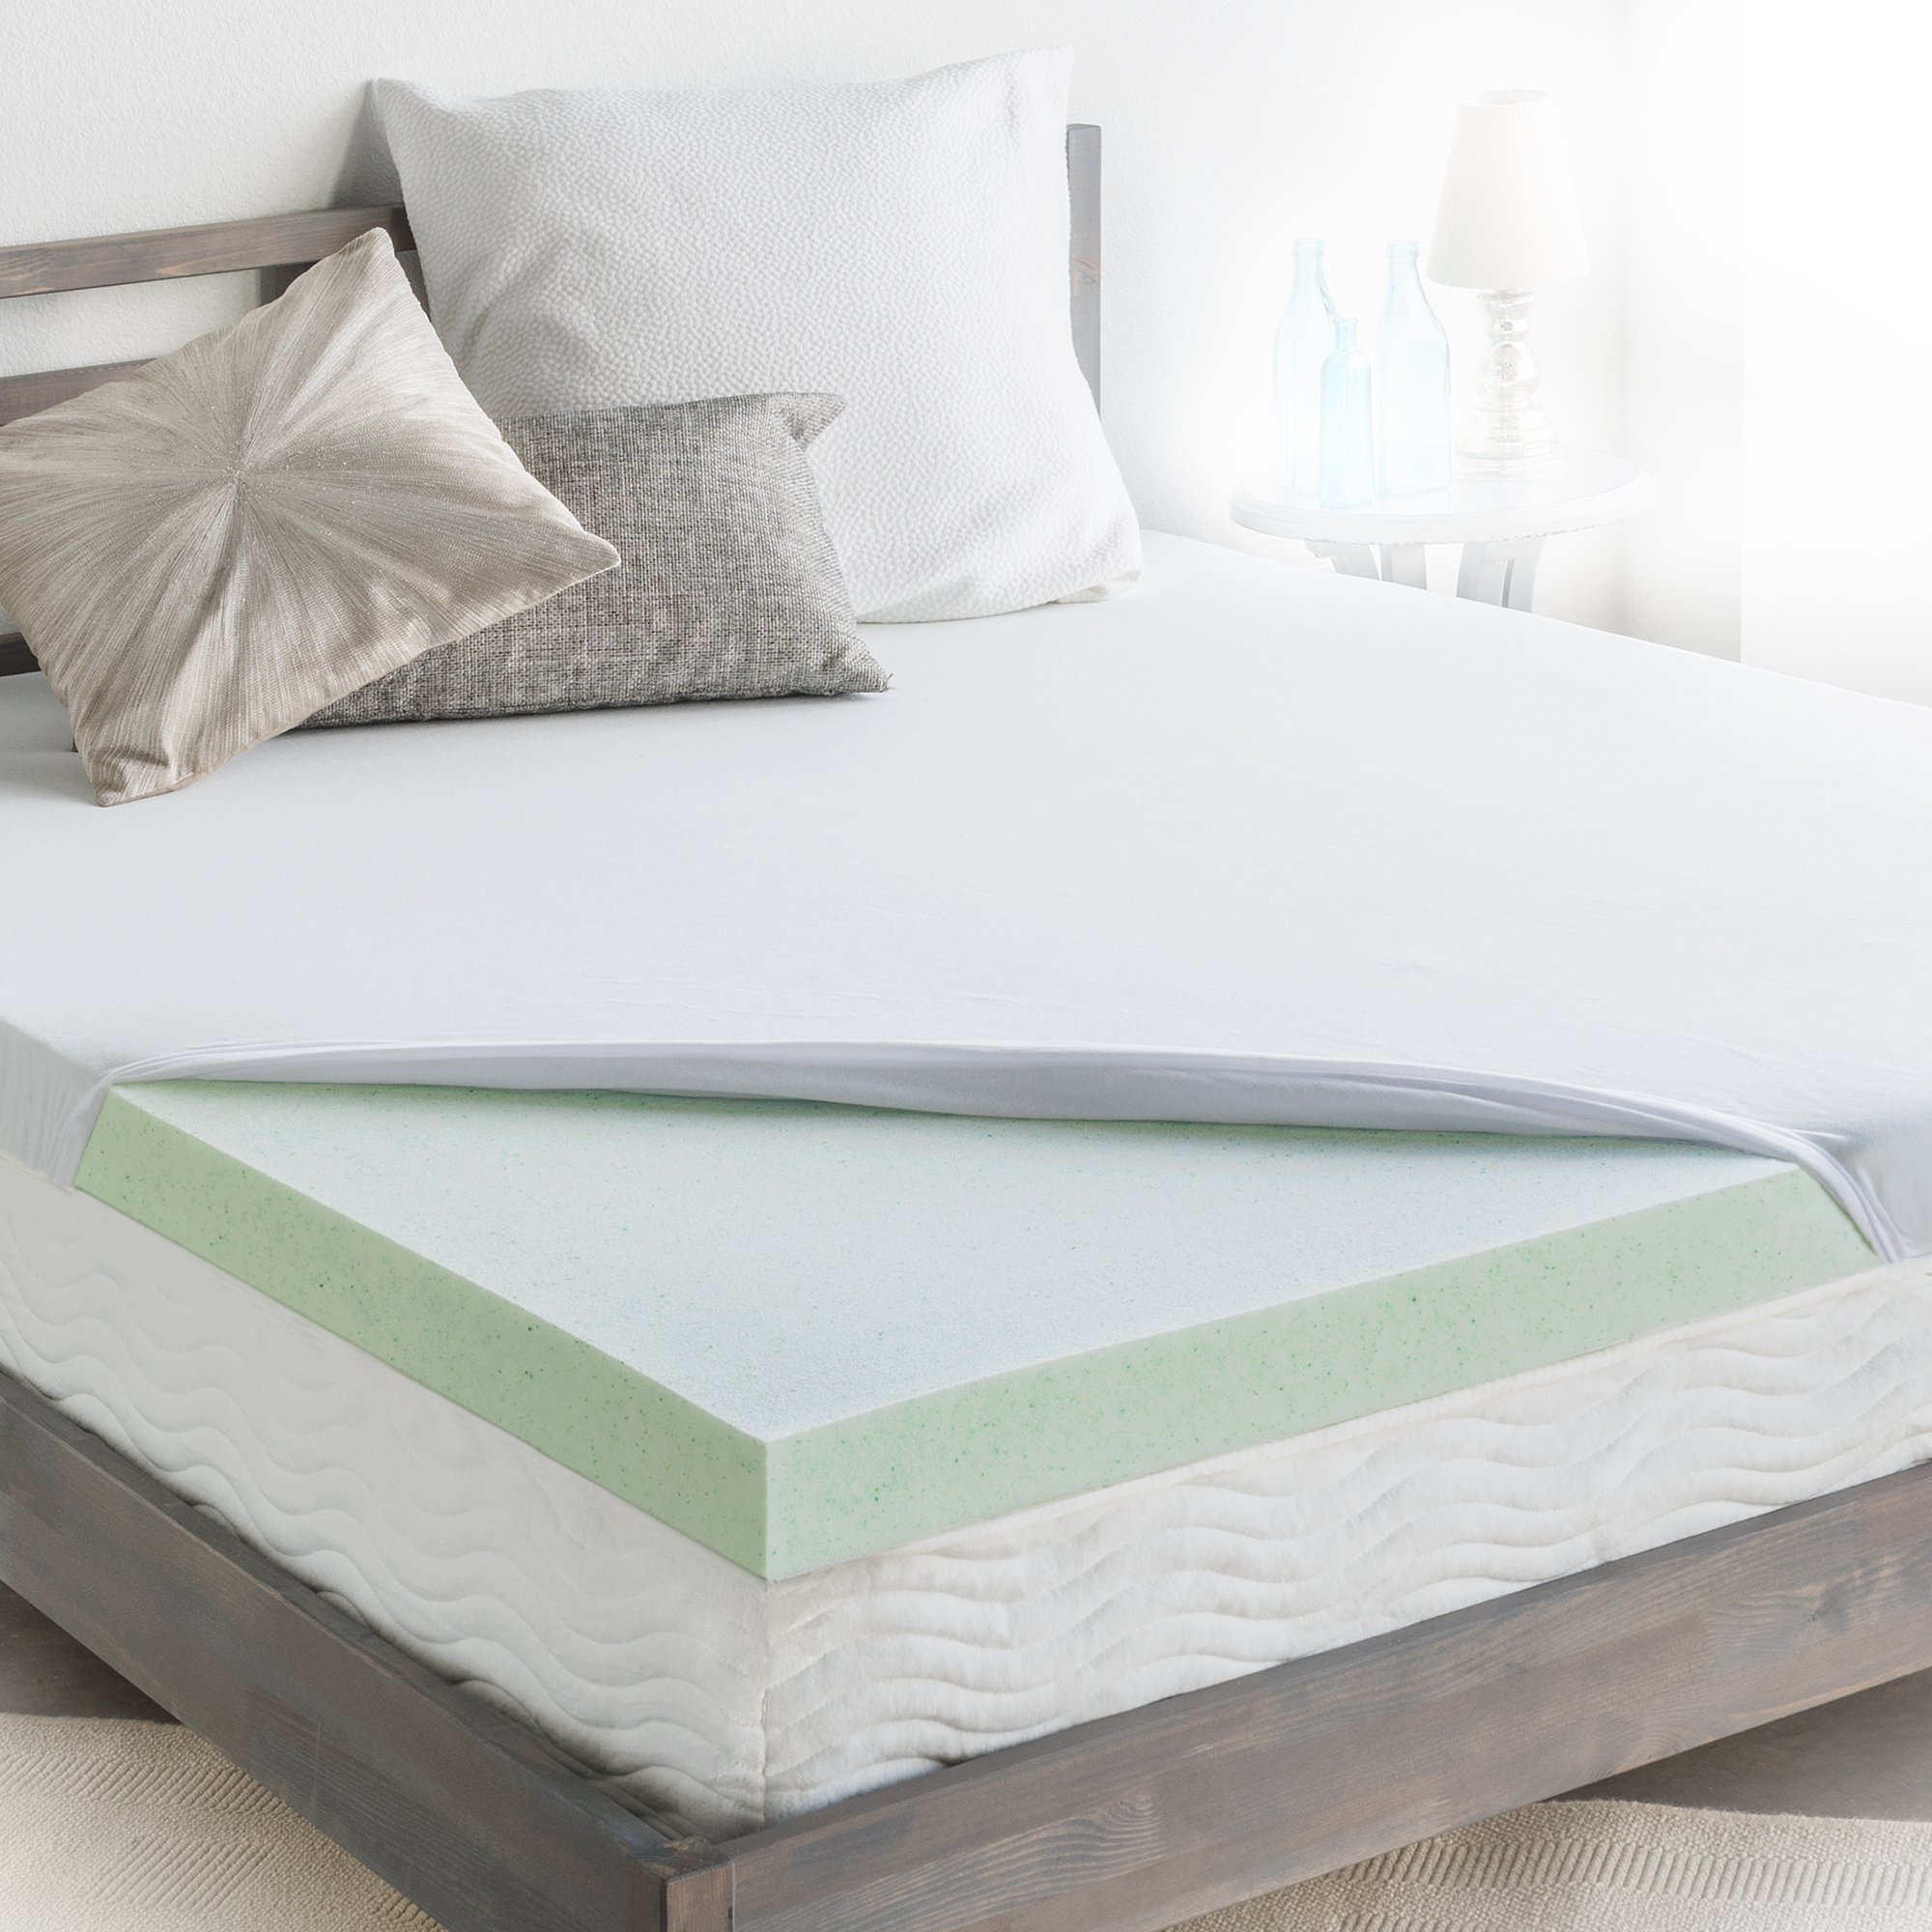 dreamfoam brooklyn buyers bedding configuration compare guide mattress latex layer bed